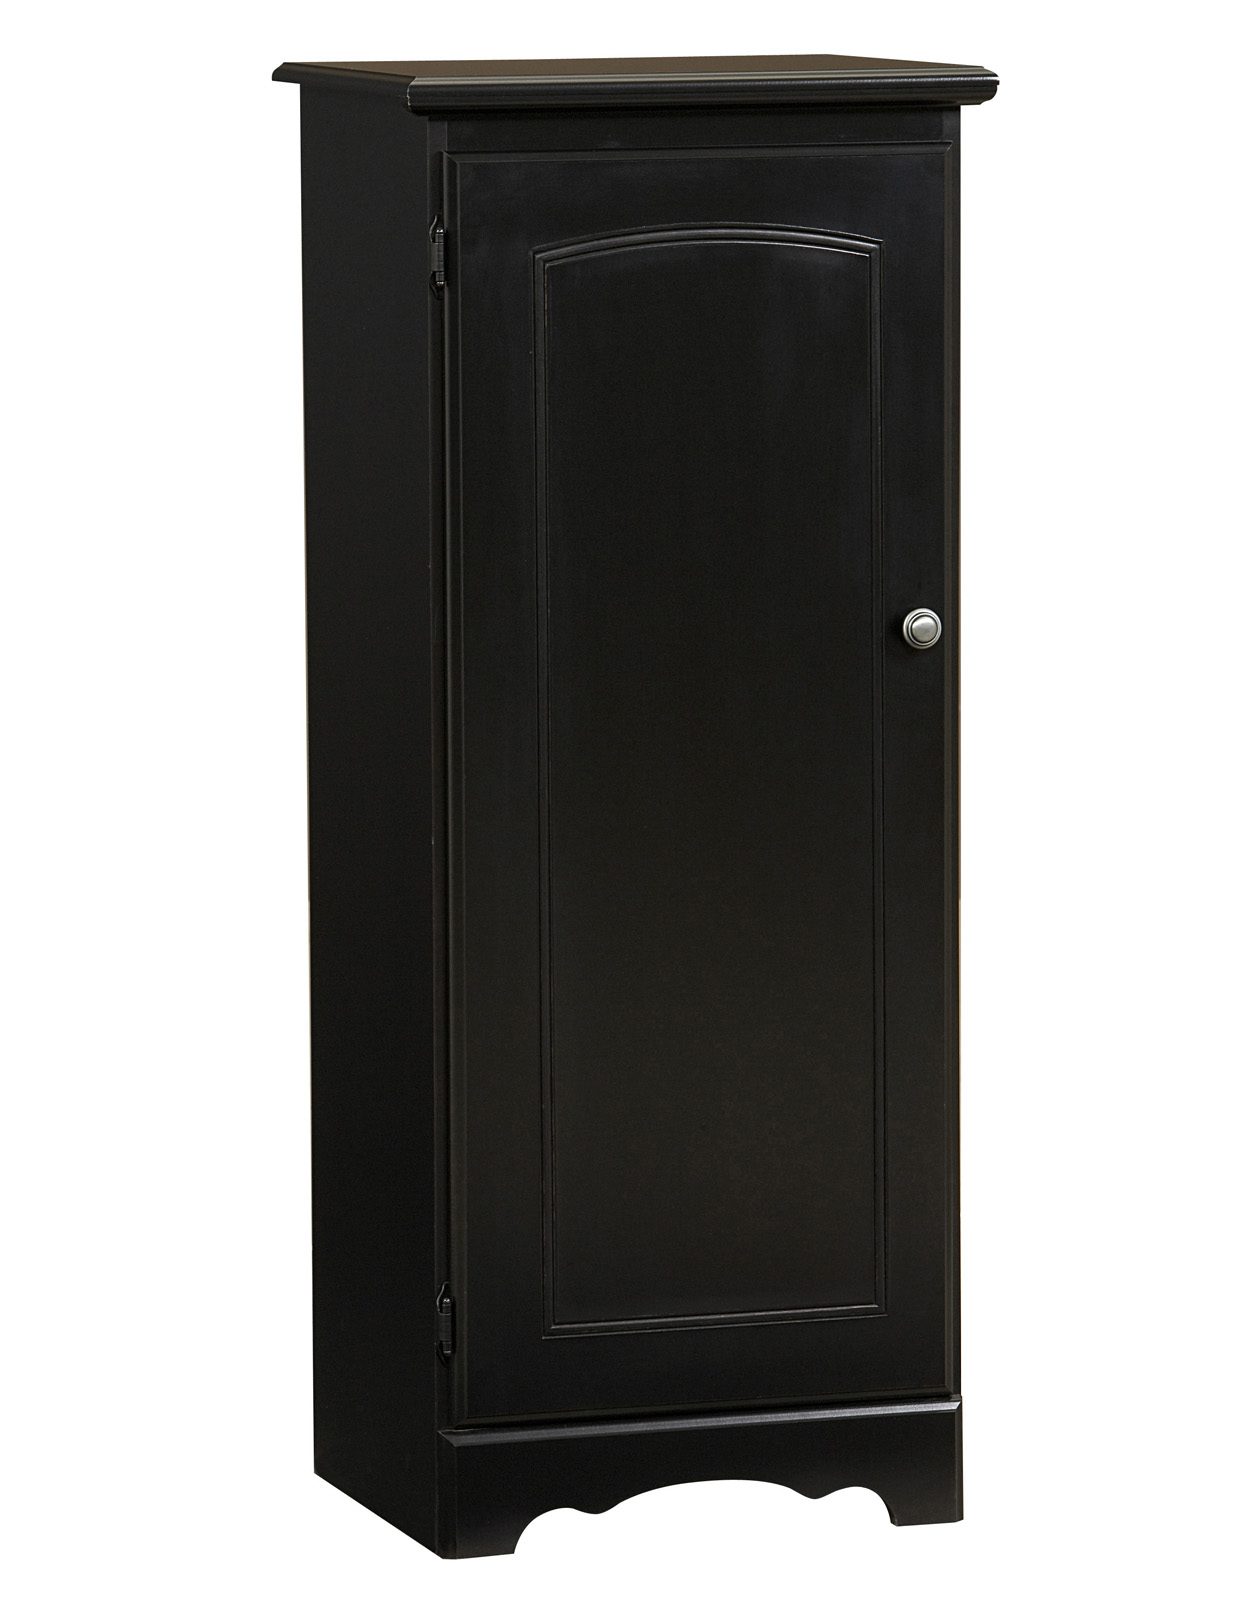 narrow kitchen base cabinet cabinets from china lane furniture 3 shelf pantry in black home